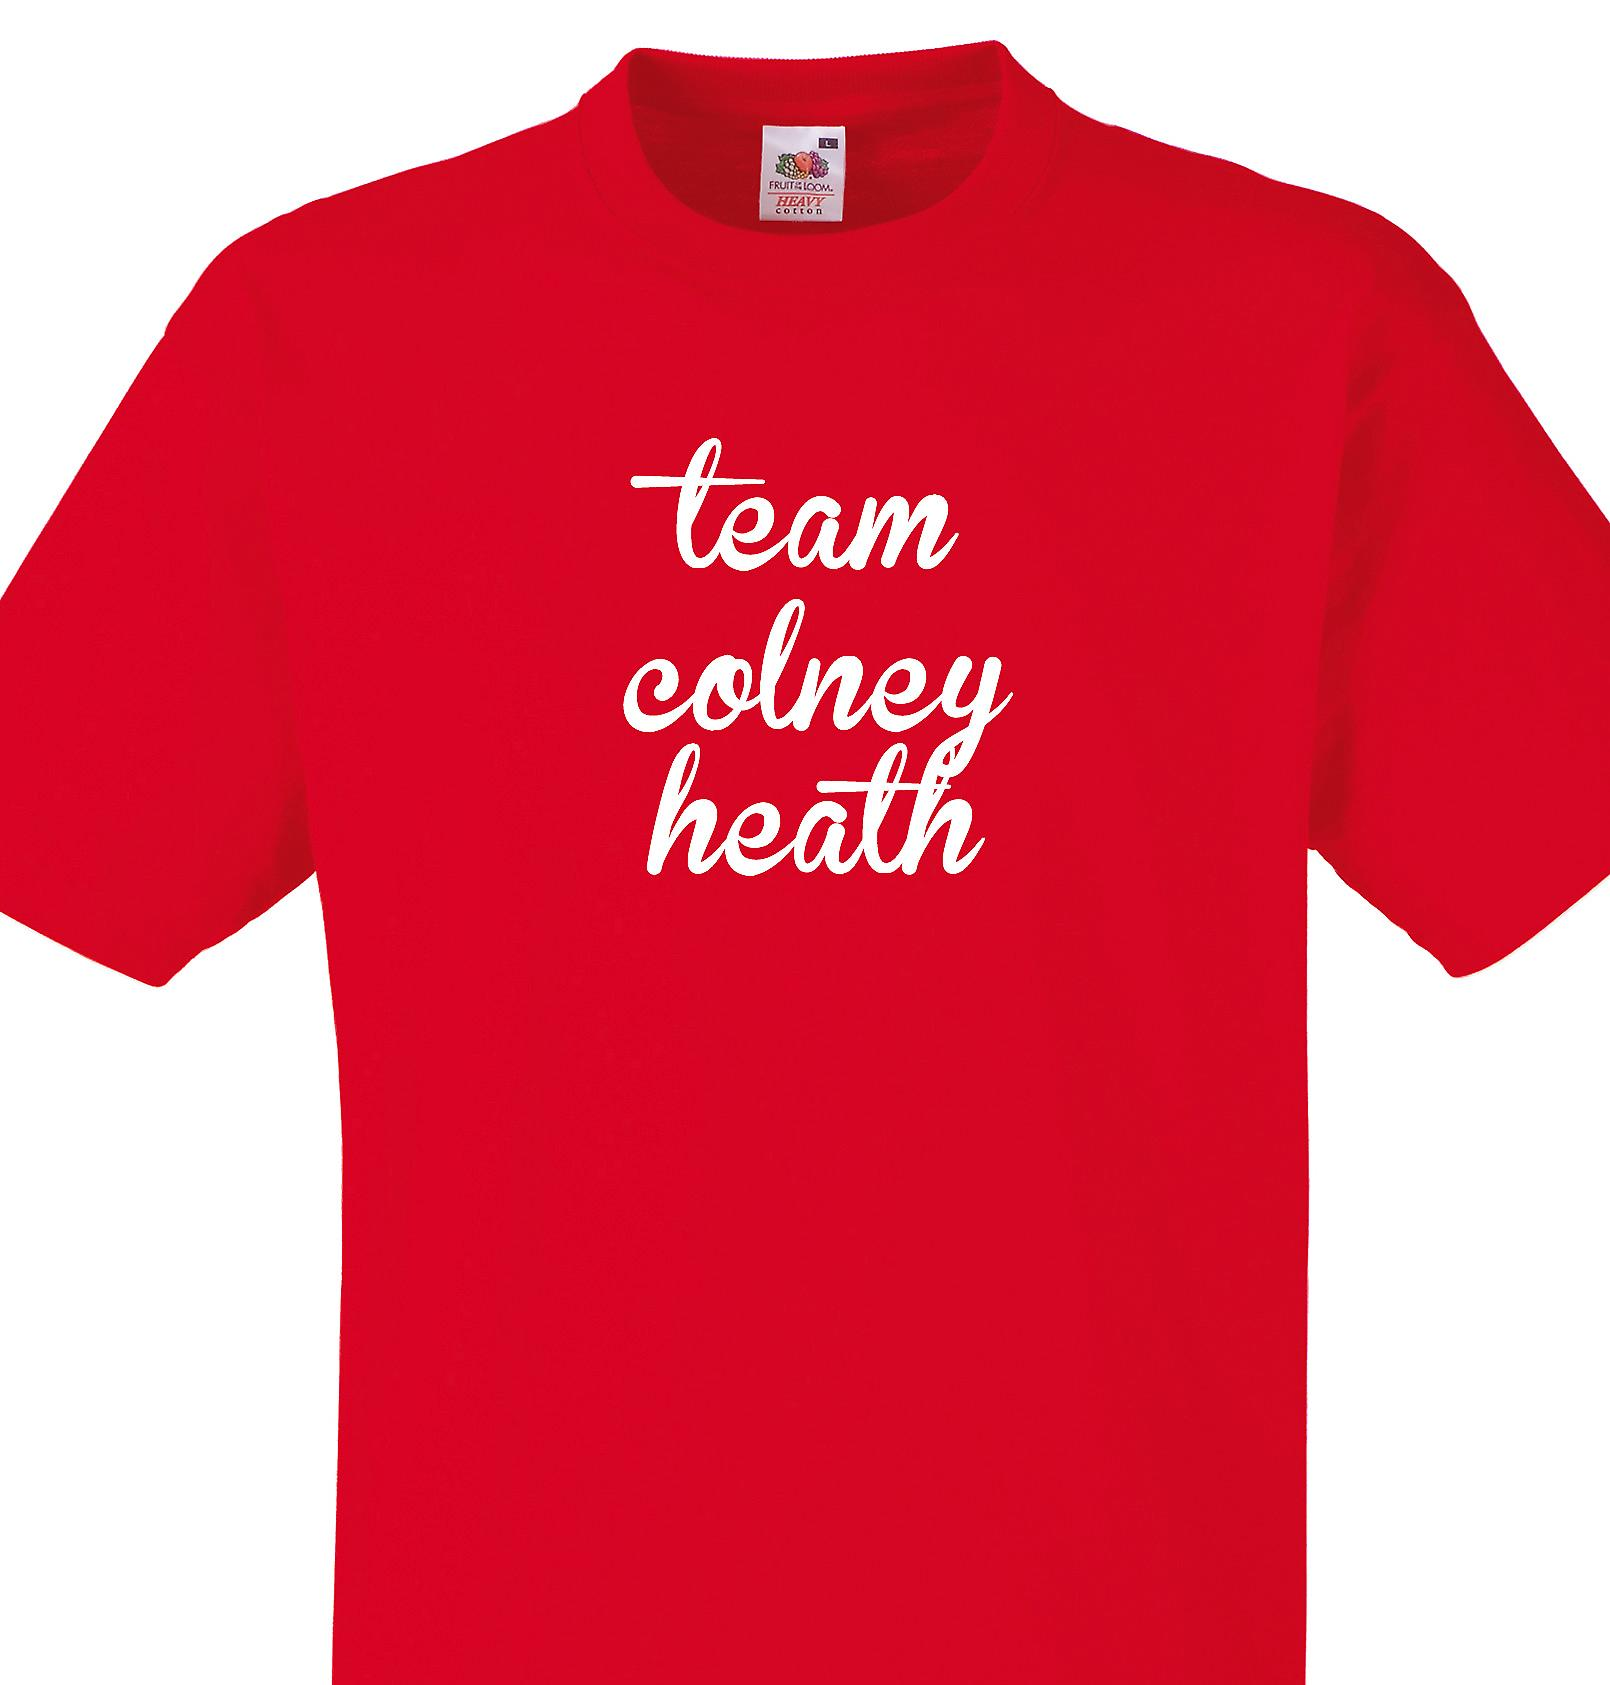 Team Colney heath Red T shirt